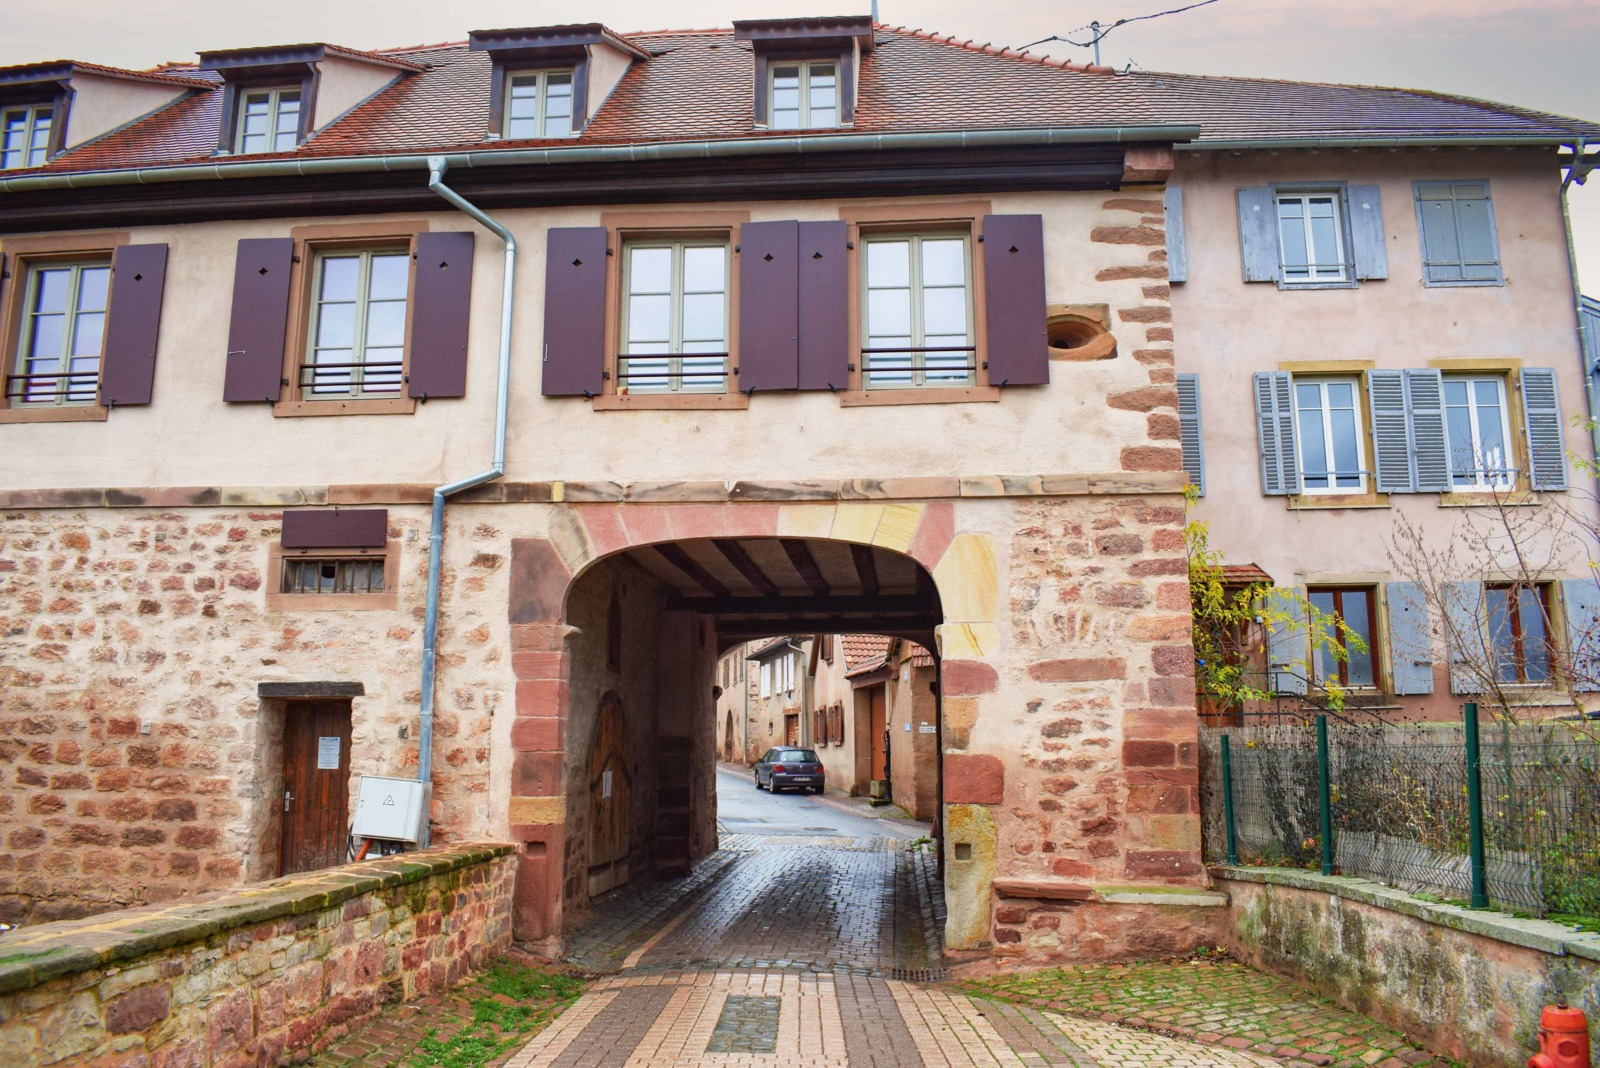 Fortified City Gates of Alsace - Porte du Sud, Wangen © French Moments